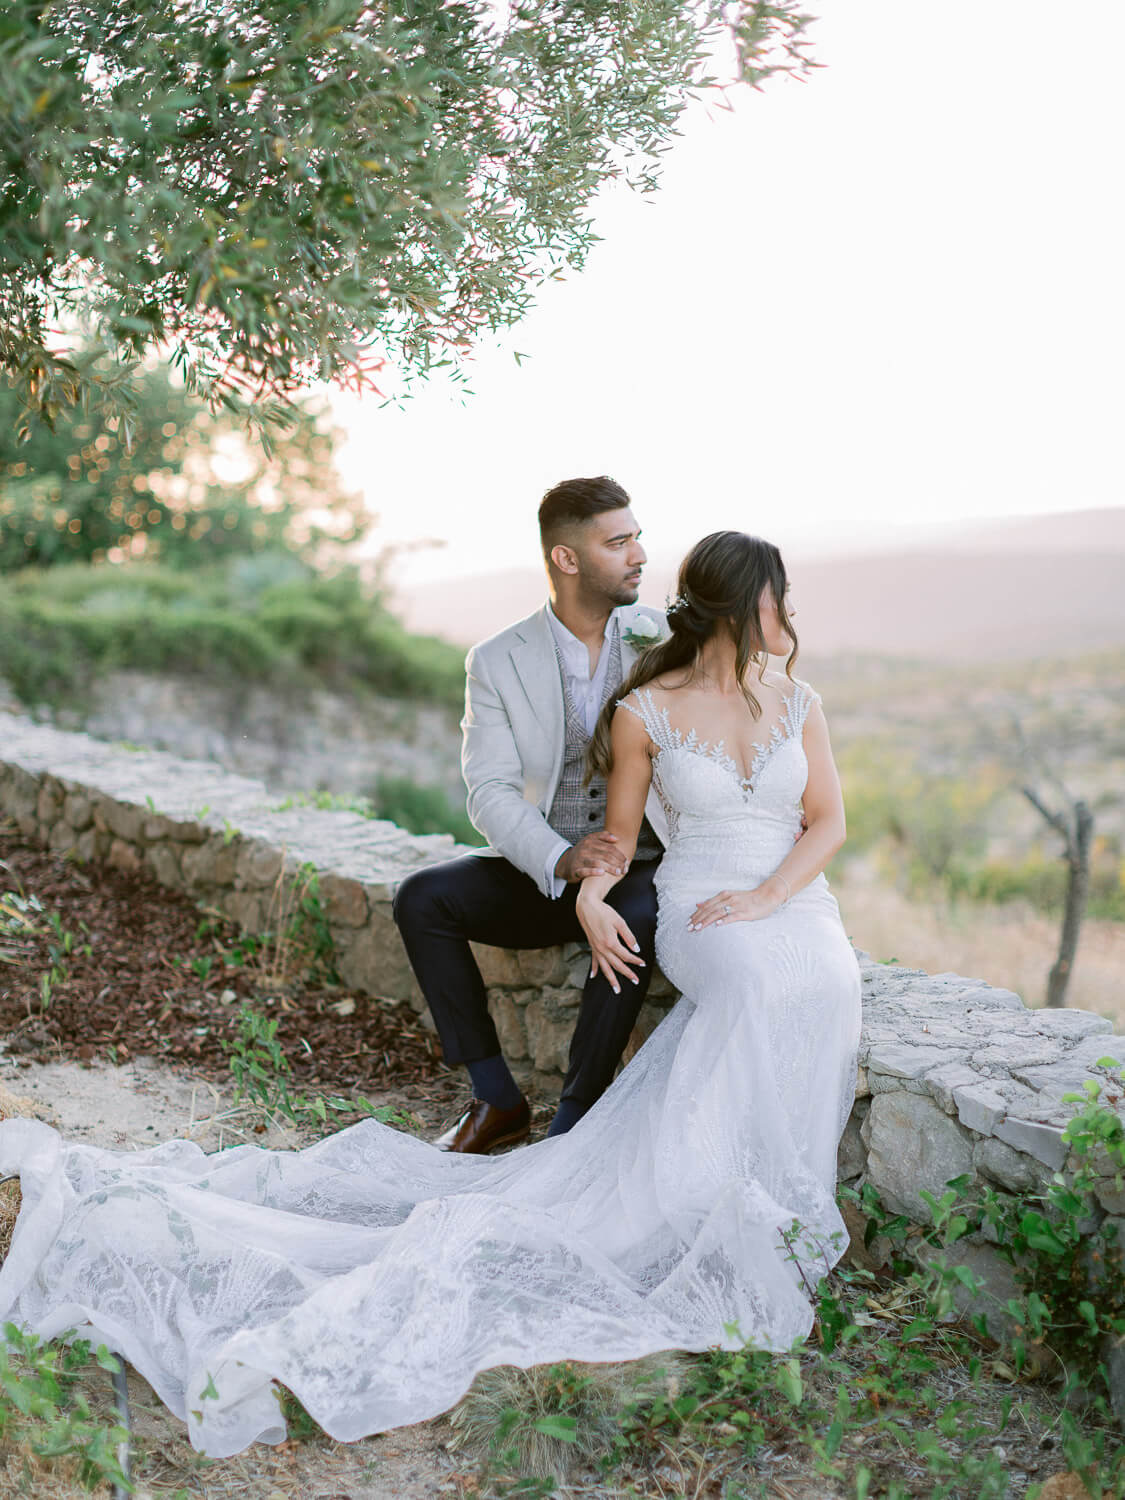 bride and groom's idyllic portrait at a destination wedding in the Algarve by Portugal Wedding Photographer